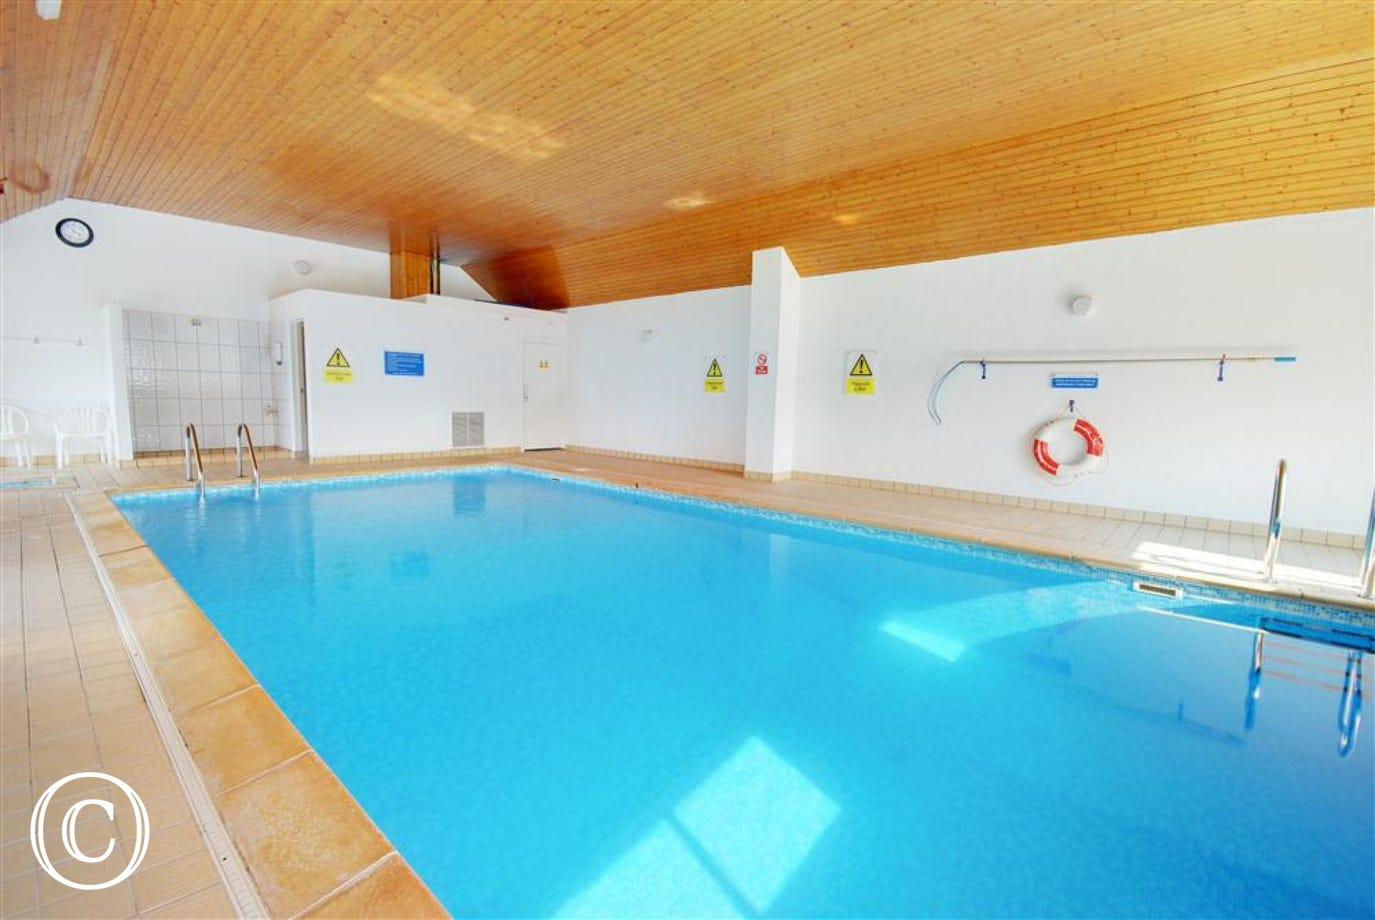 The heated swimming pool at Clifton Court.